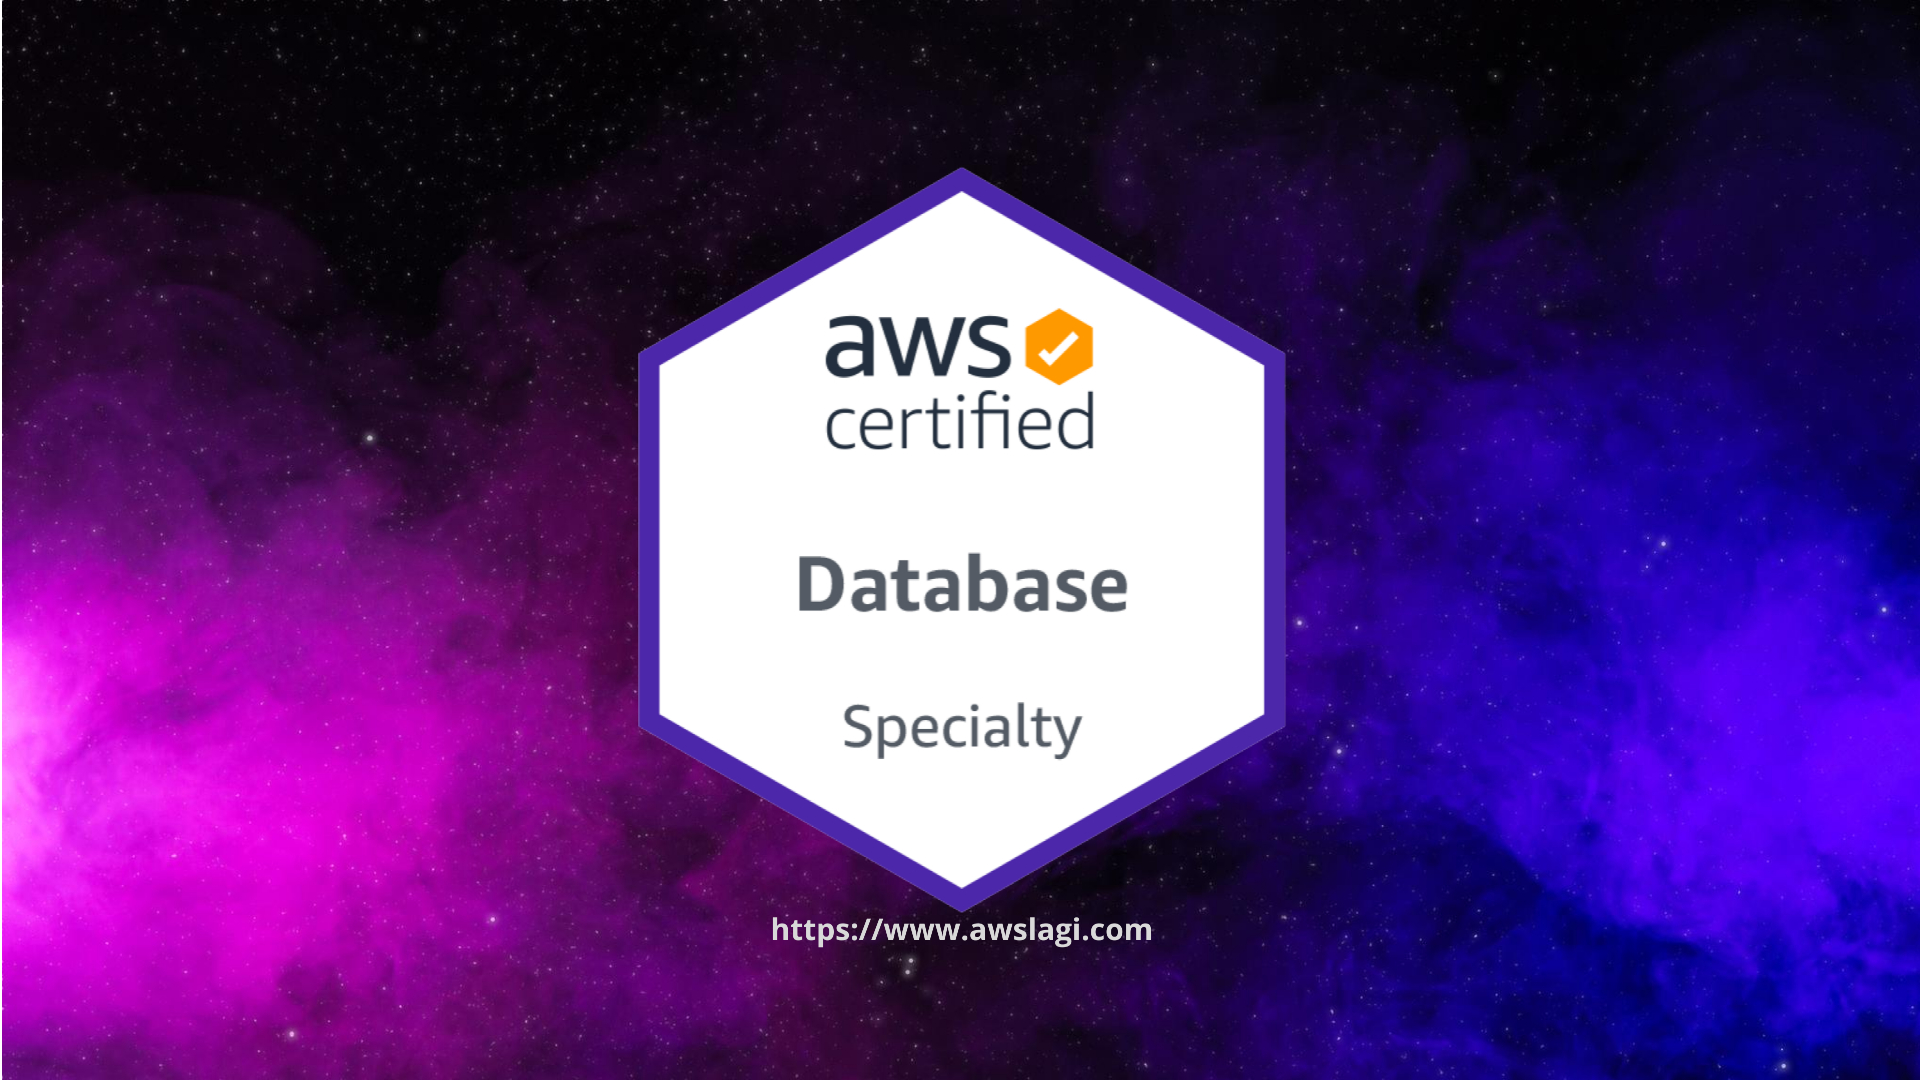 AWS Certified Database Specialty DBS-C01 Actual Exam Logo